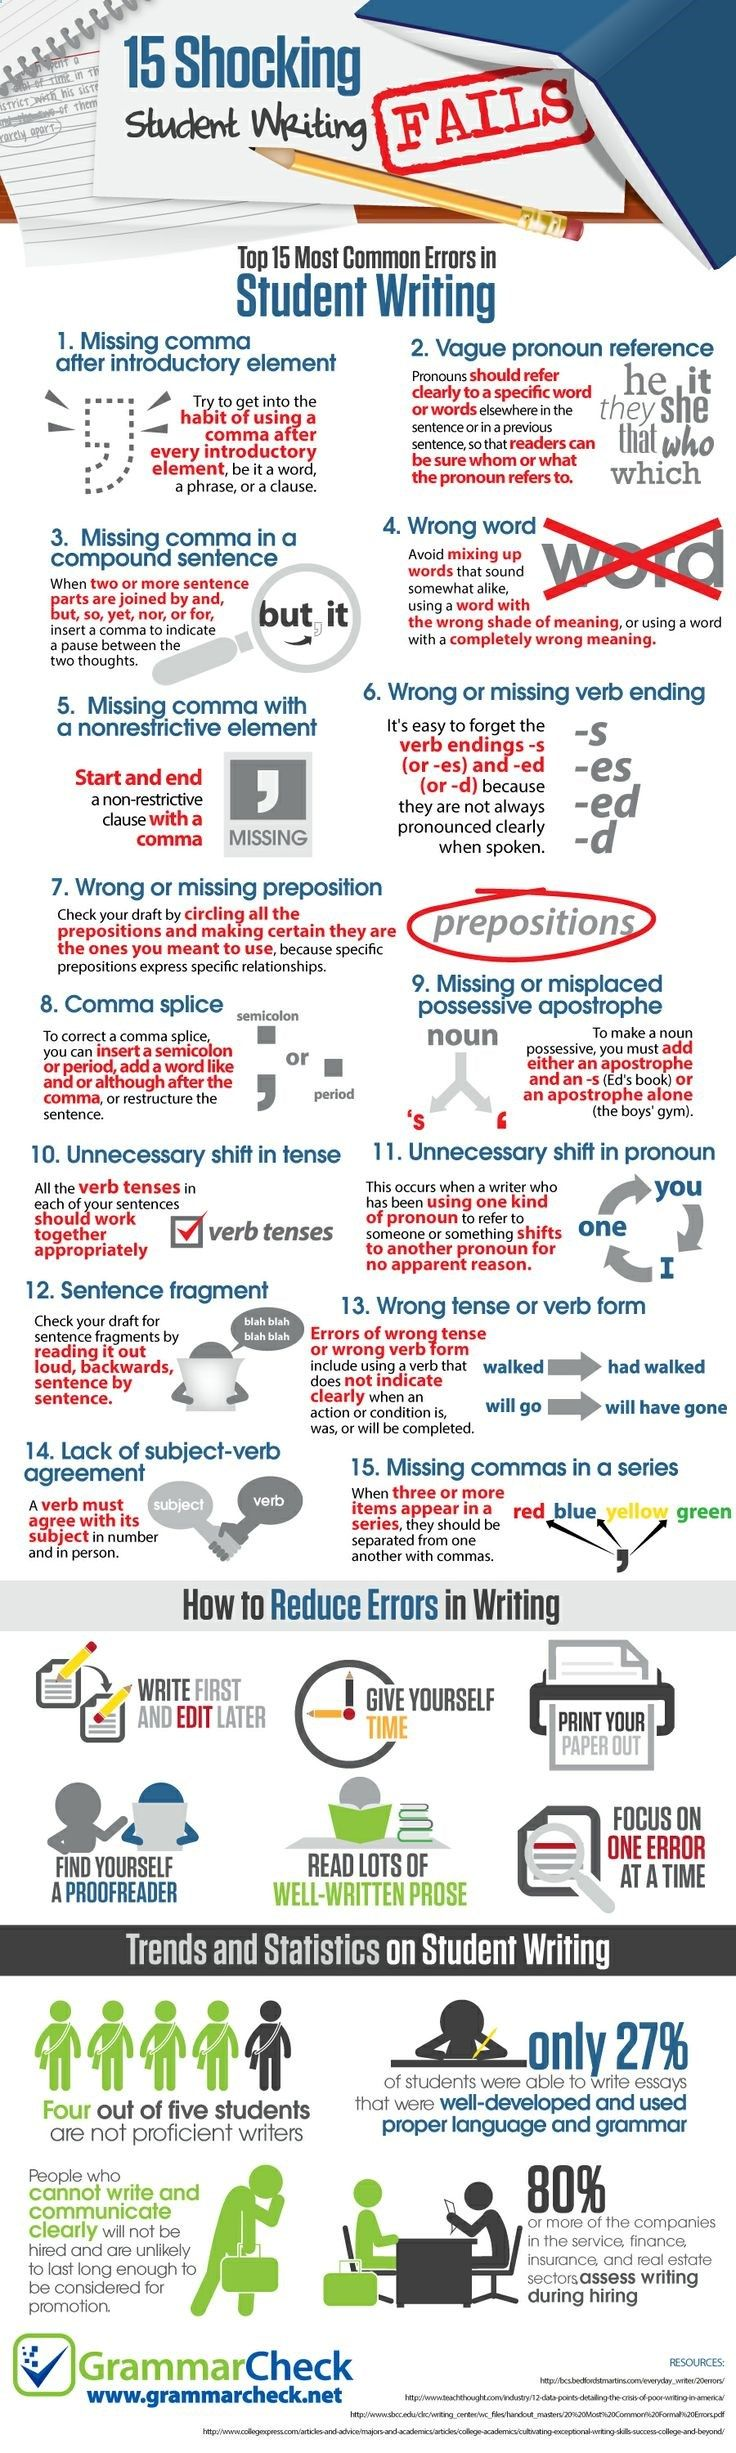 15 Most Common Errors in Student Writing